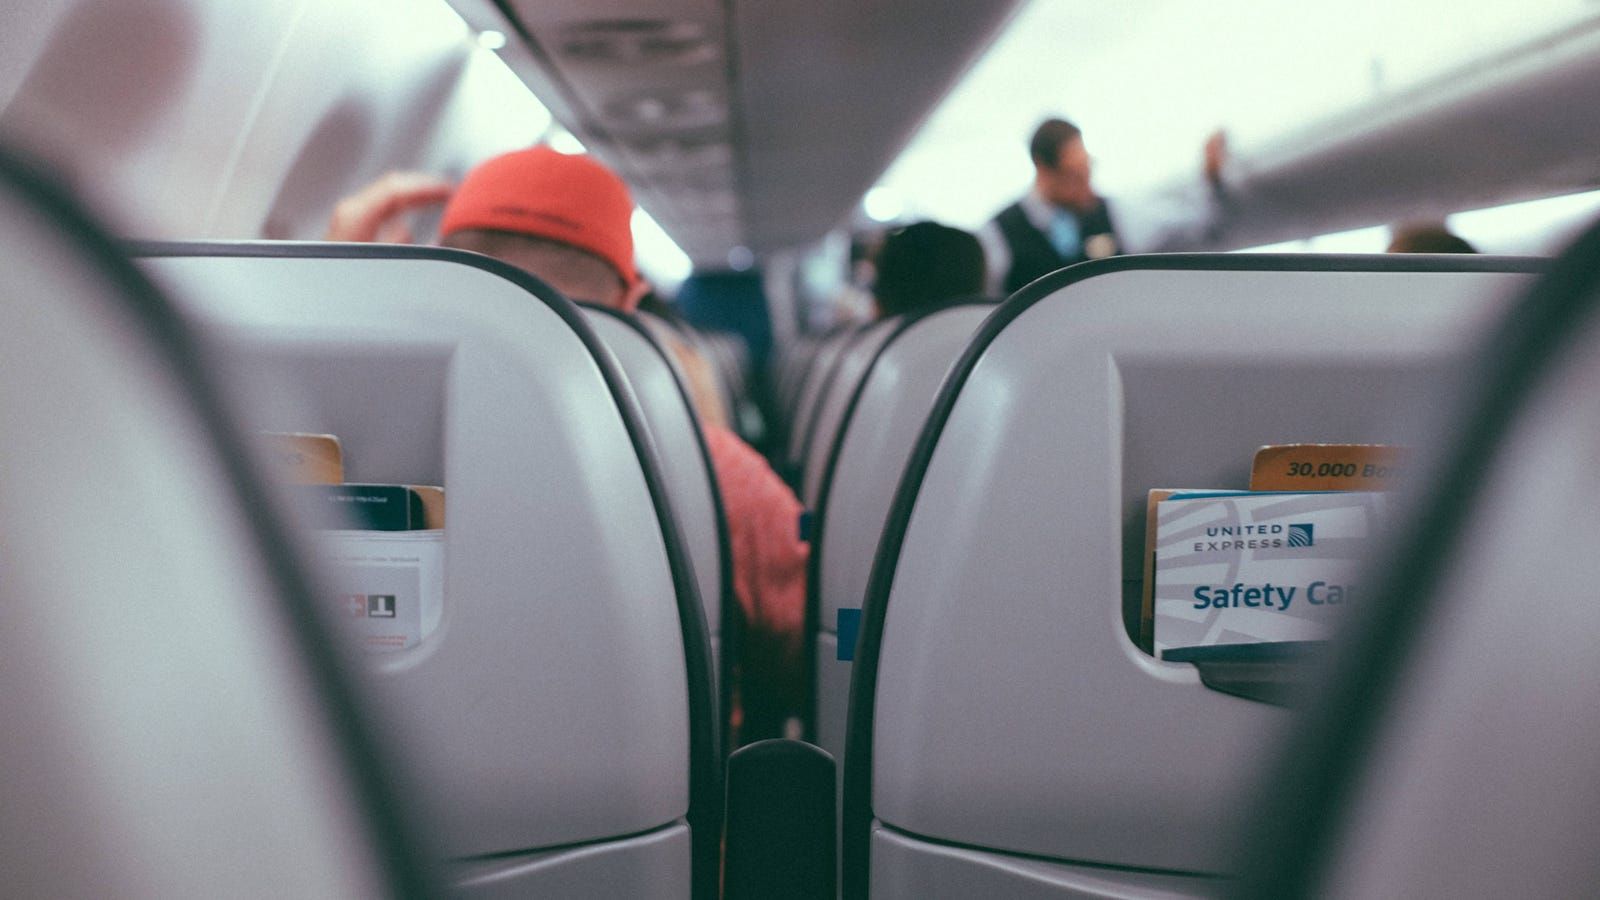 Before You Recline Your Airplane Seat, Check the Person Behind You